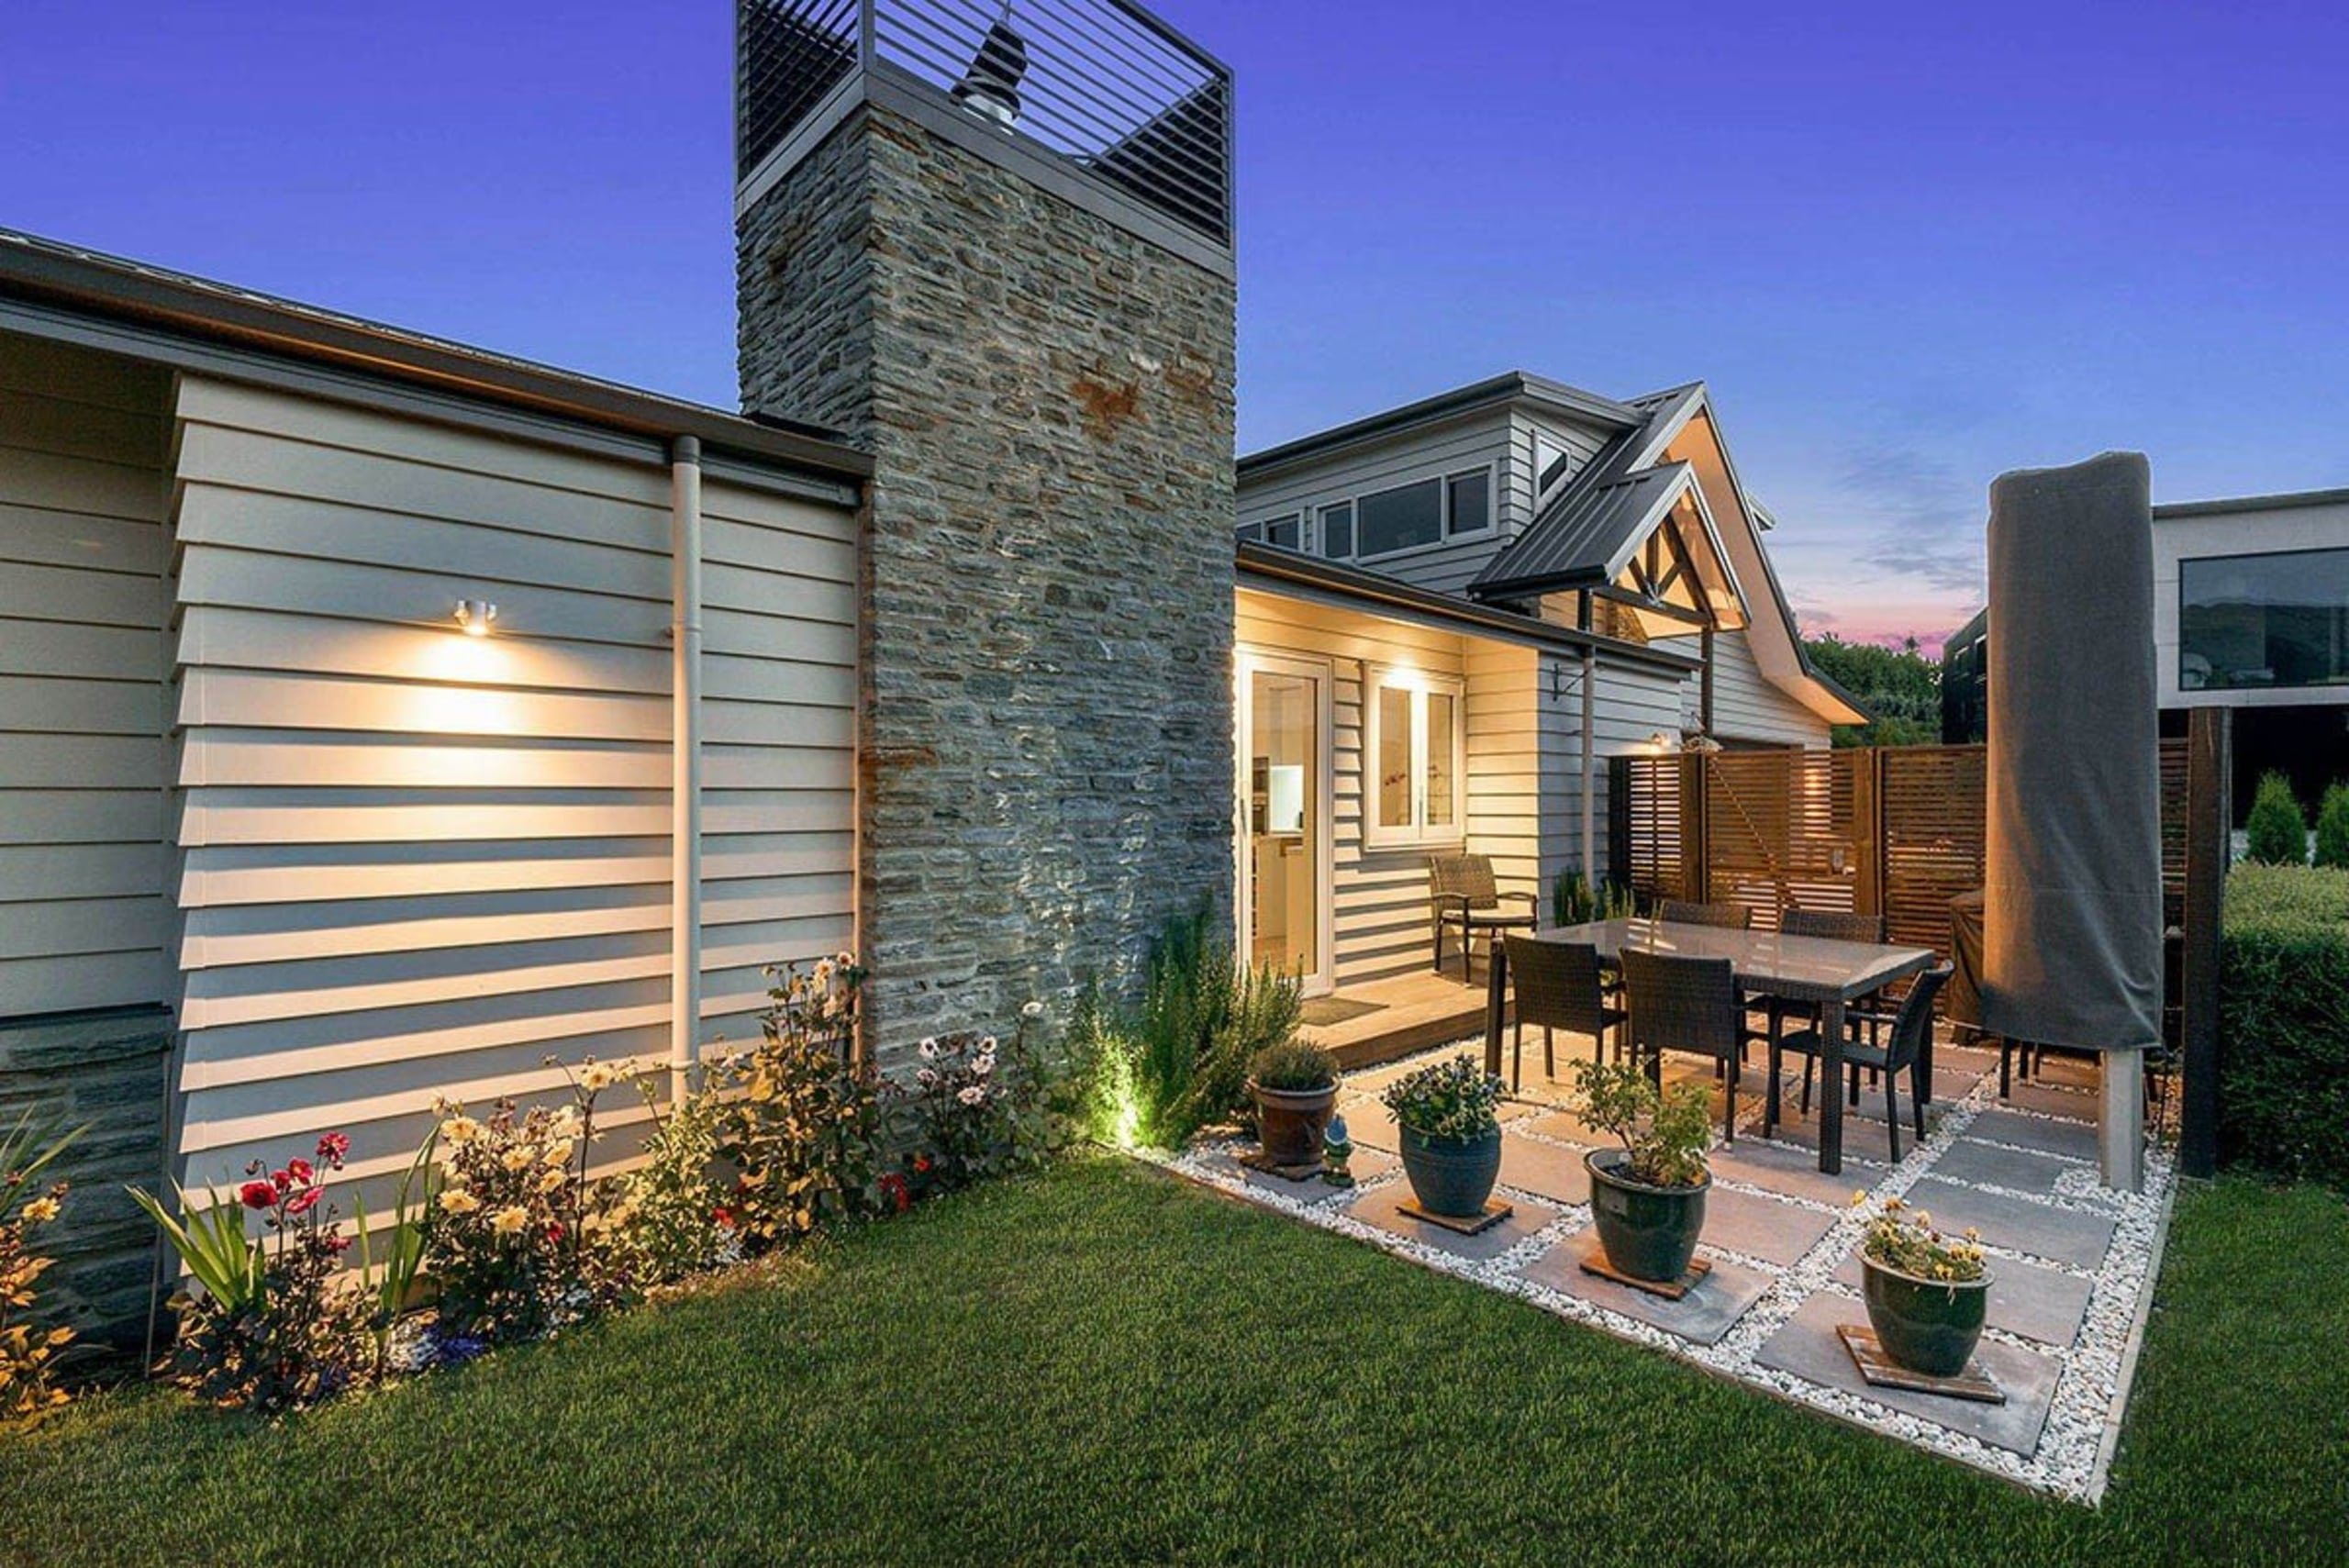 Natural schist stone and timber weatherboards go hand backyard, cottage, estate, facade, farmhouse, home, house, property, real estate, residential area, siding, yard, gray